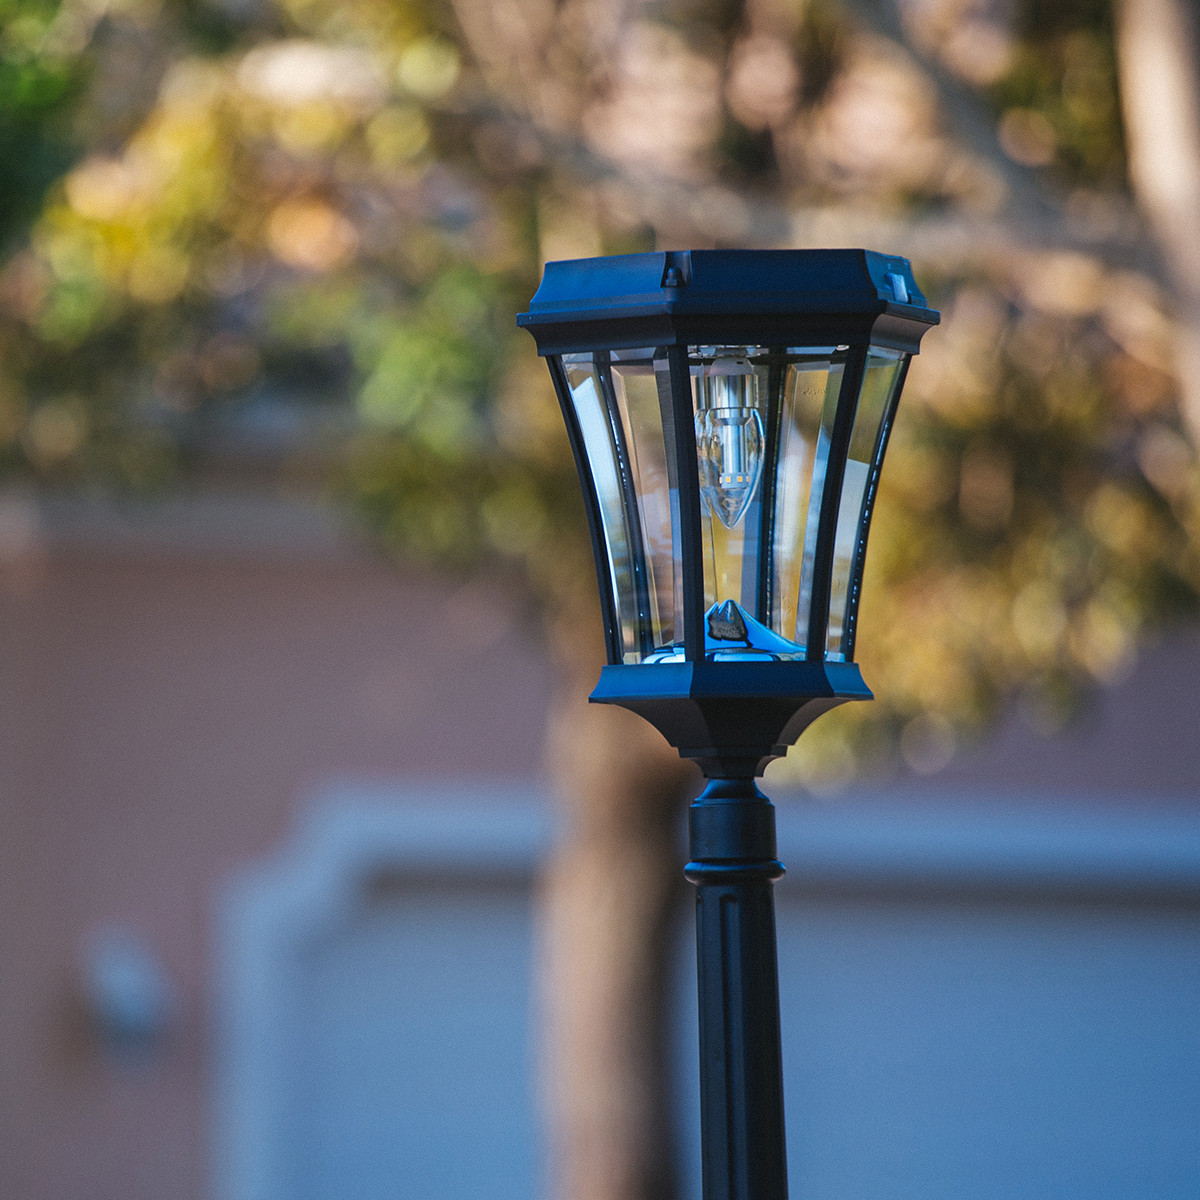 Best ideas about Solar Lamp Post Lights . Save or Pin Victorian Bulb Solar Lamp and Single Lamp Post with GS Now.